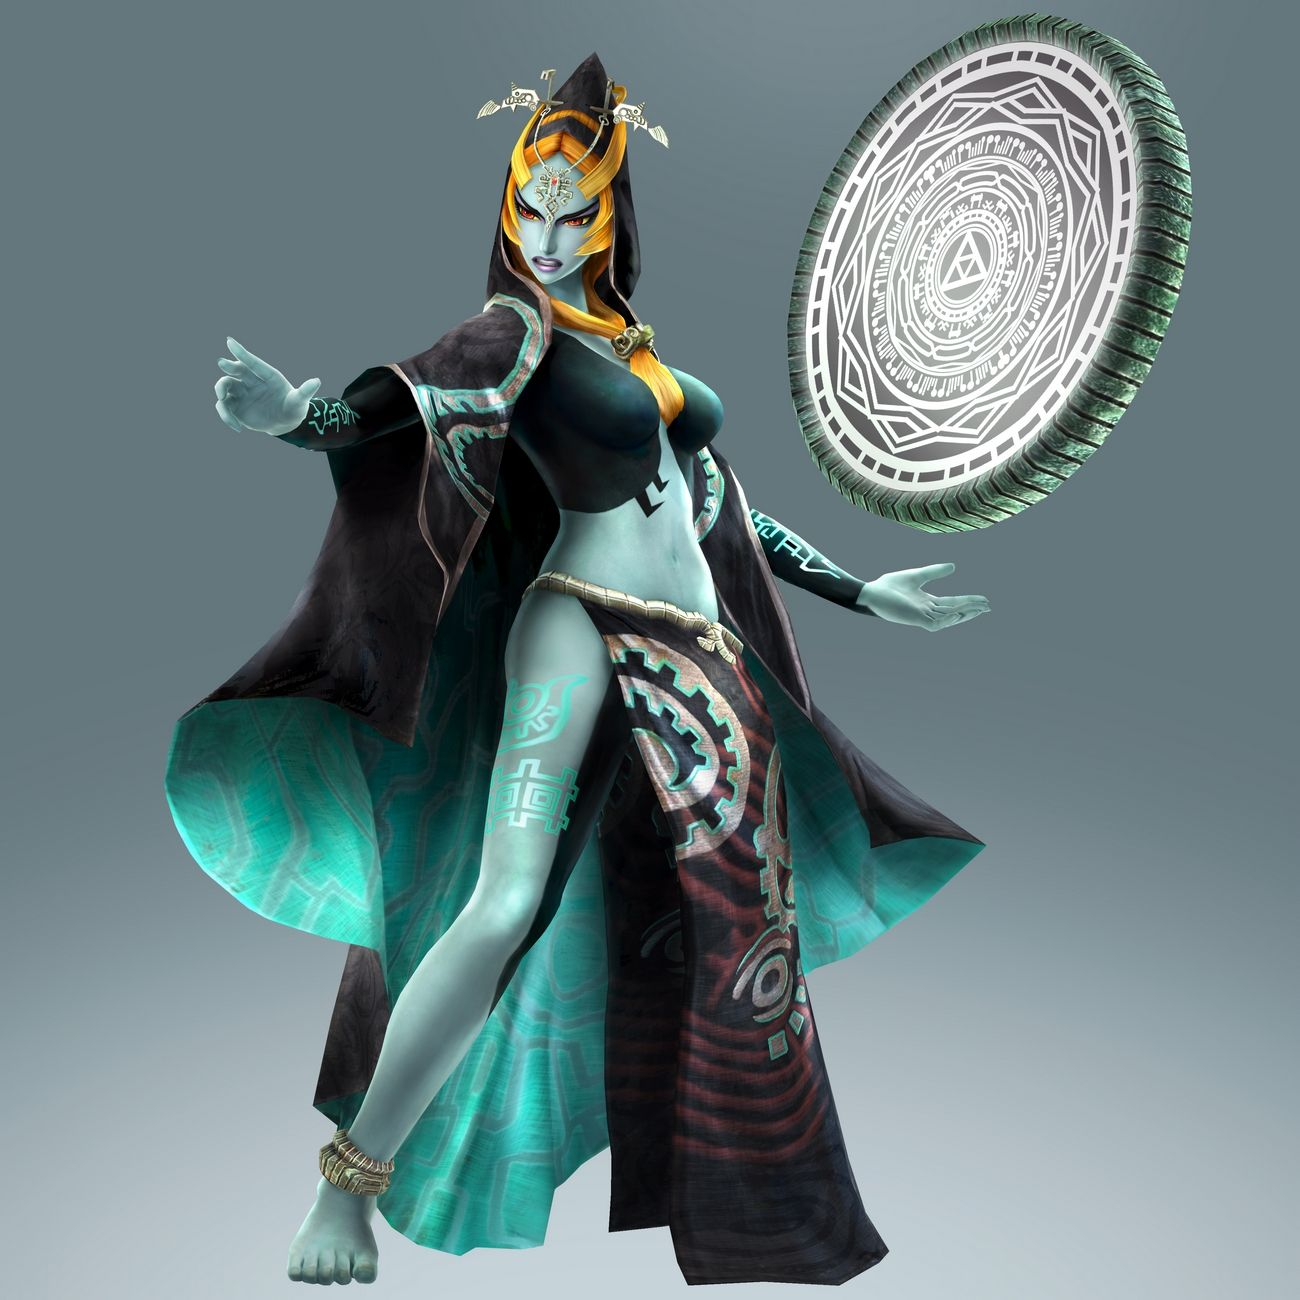 Midna true form become a playable character with #HyruleWarriors ...